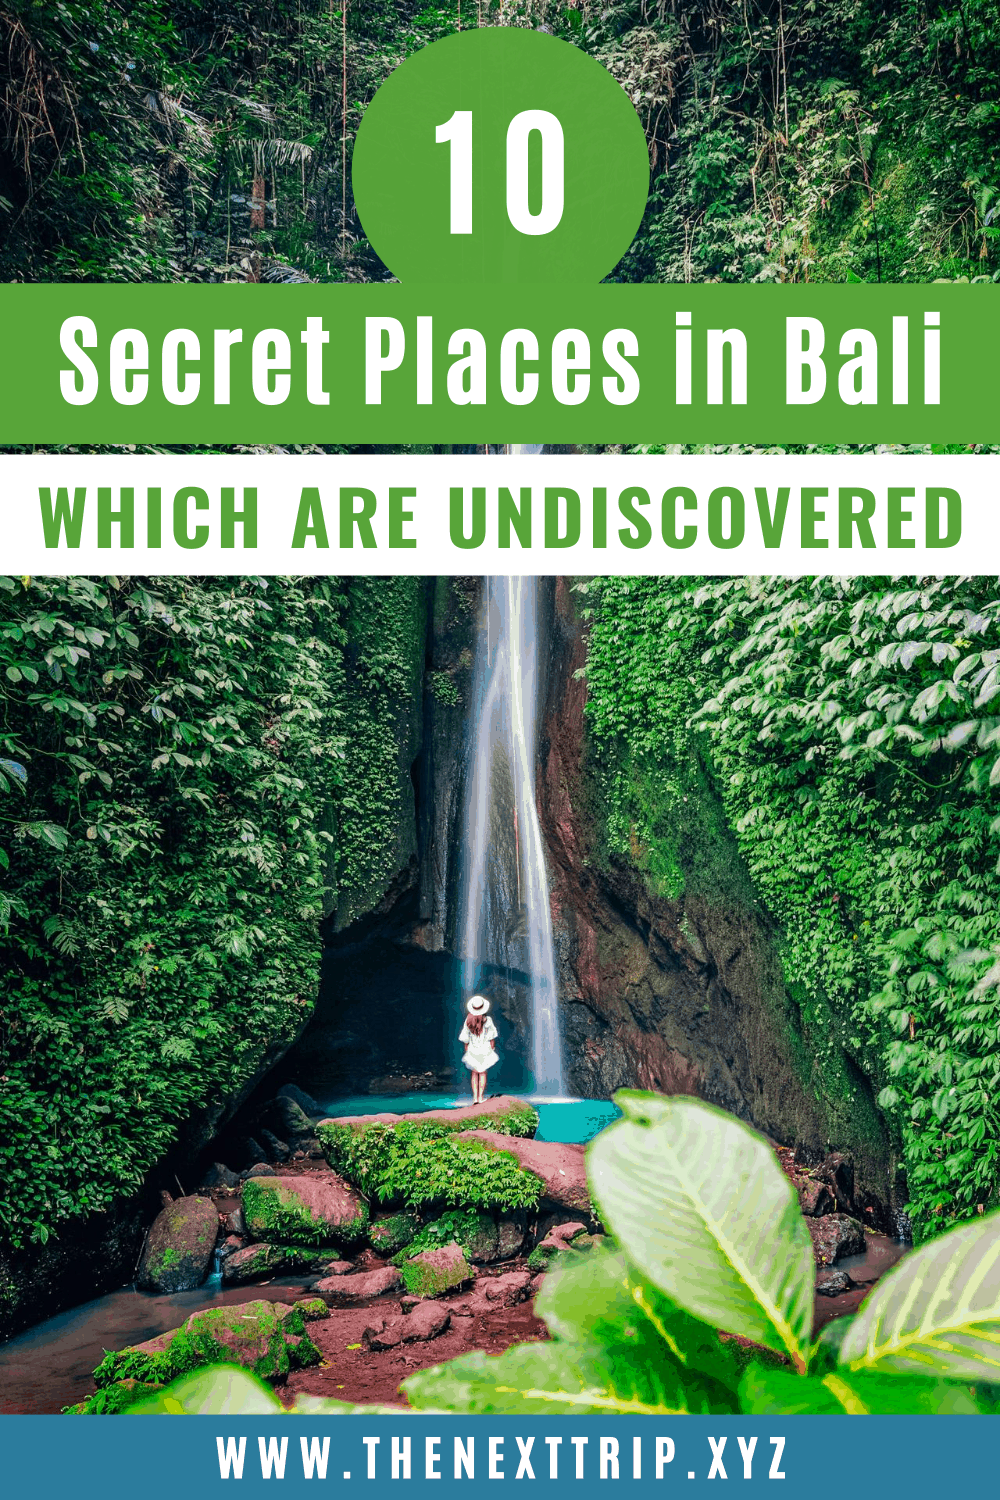 The 10 best hidden gems in Bali and undiscovered places away from tourism! Here are 10 Bali hidden gems revealed which are still undiscovered. Discover the best secret places in Bali from remote waterfalls, secret temples, and lakes. | Bali travel guide | Bali hidden gems | Bali hidden places | Bali secret places | Bali hidden beach | Bali hidden waterfall | Bali travel tips | Bali guide